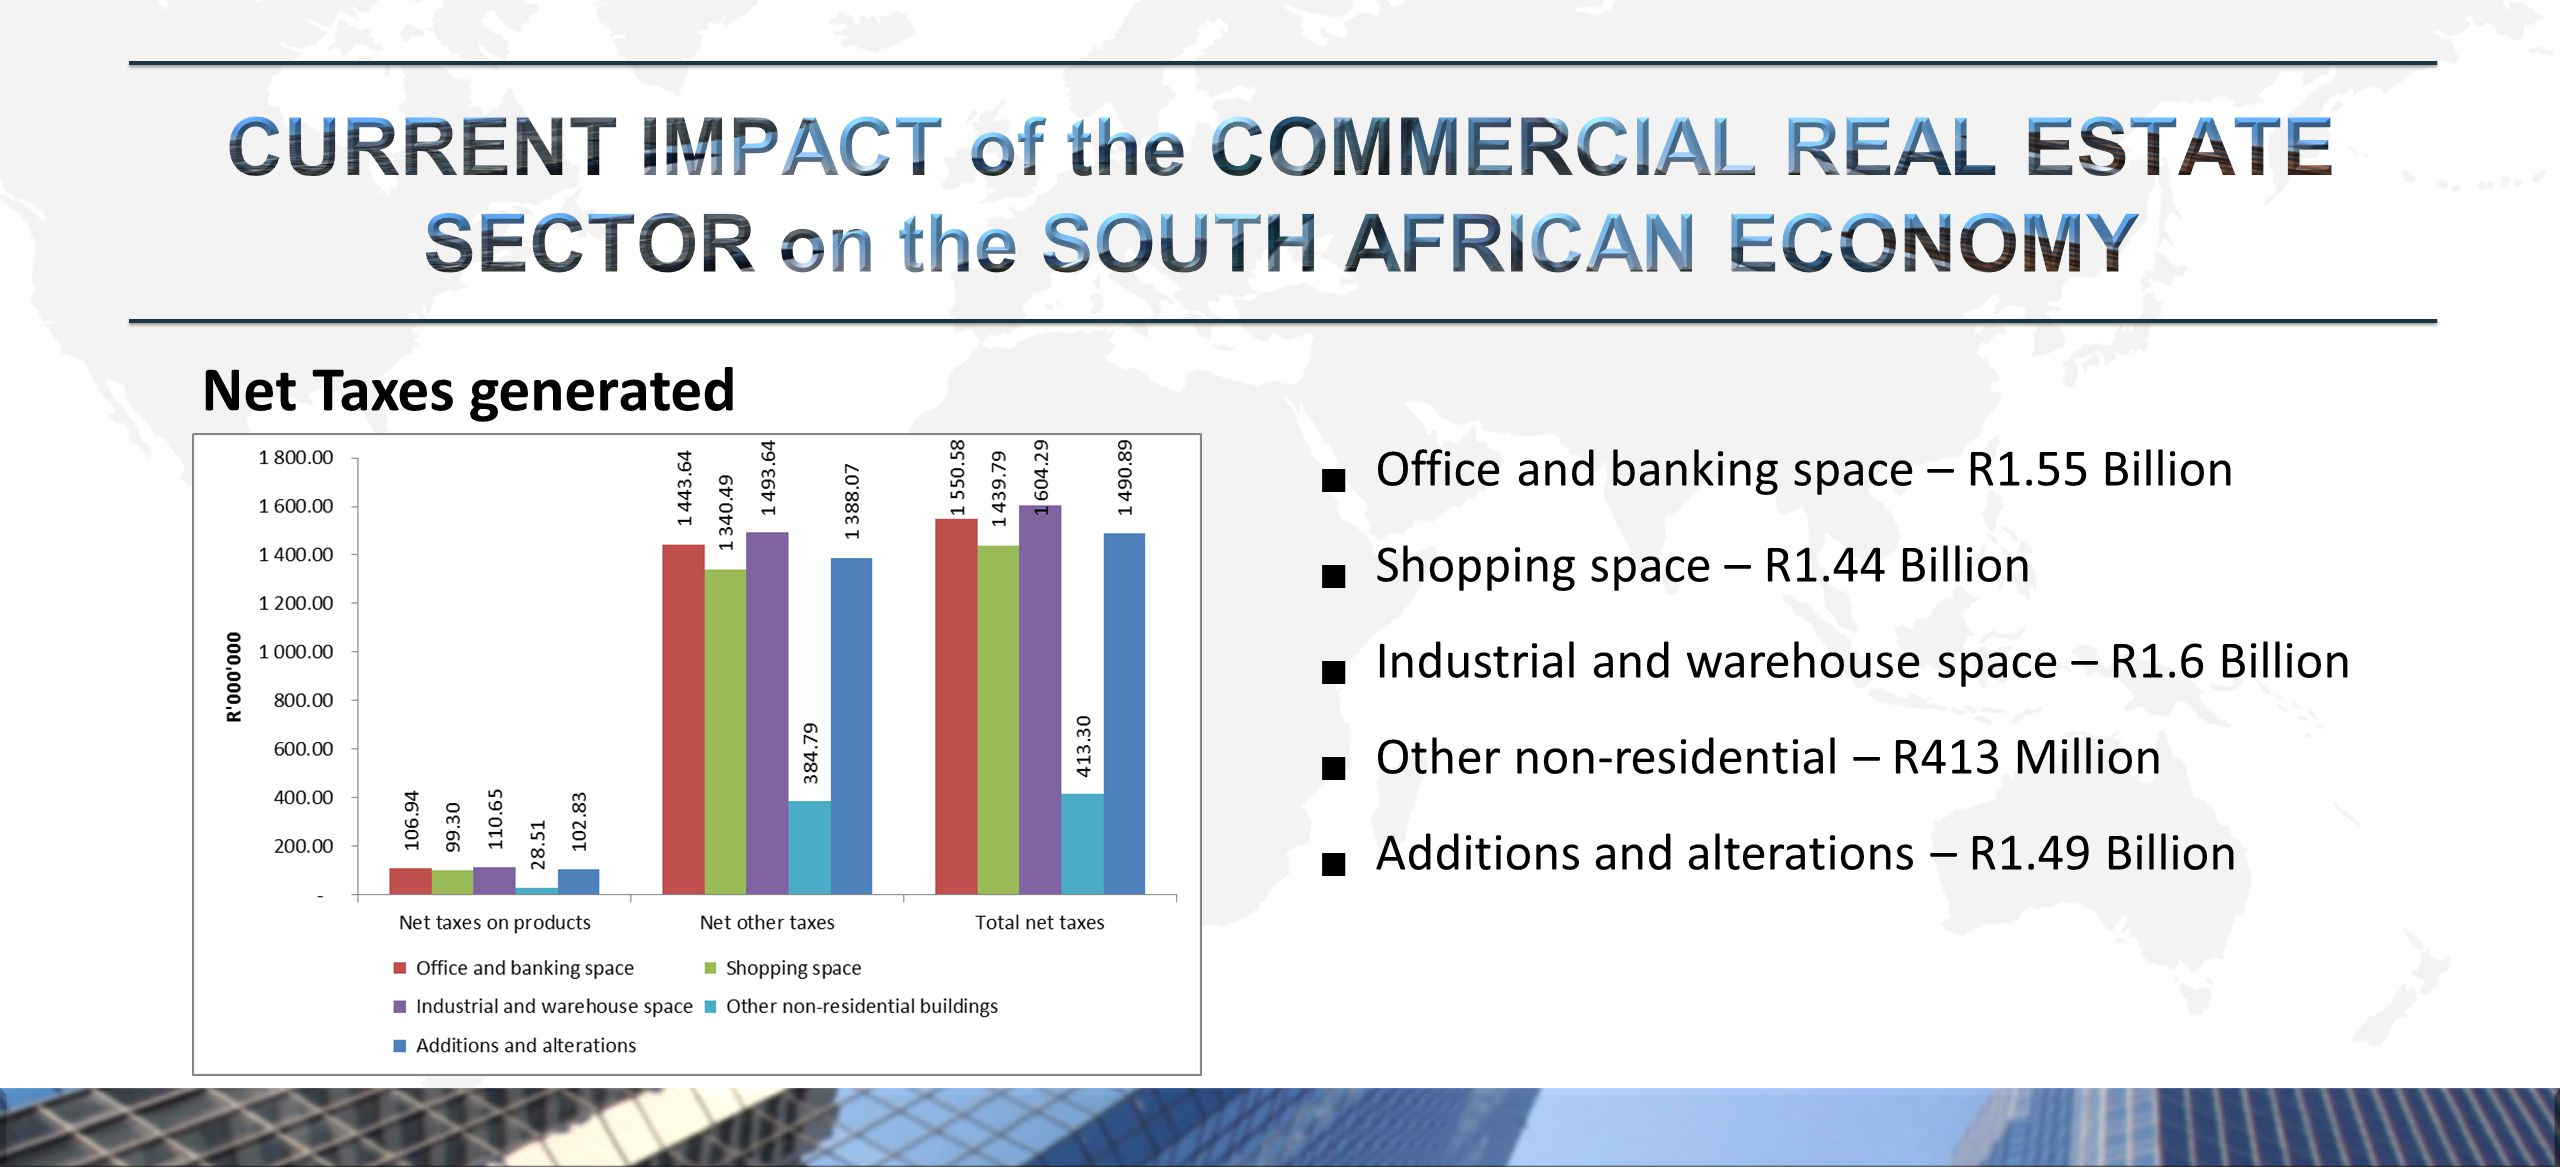 Net Taxes generated  Office and banking space – R1.55 Billion  Shopping space – R1.44 Billion  Industrial and warehouse space – R1.6 Billion  Other non-residential – R413 Million  Additions and alterations – R1.49 Billion